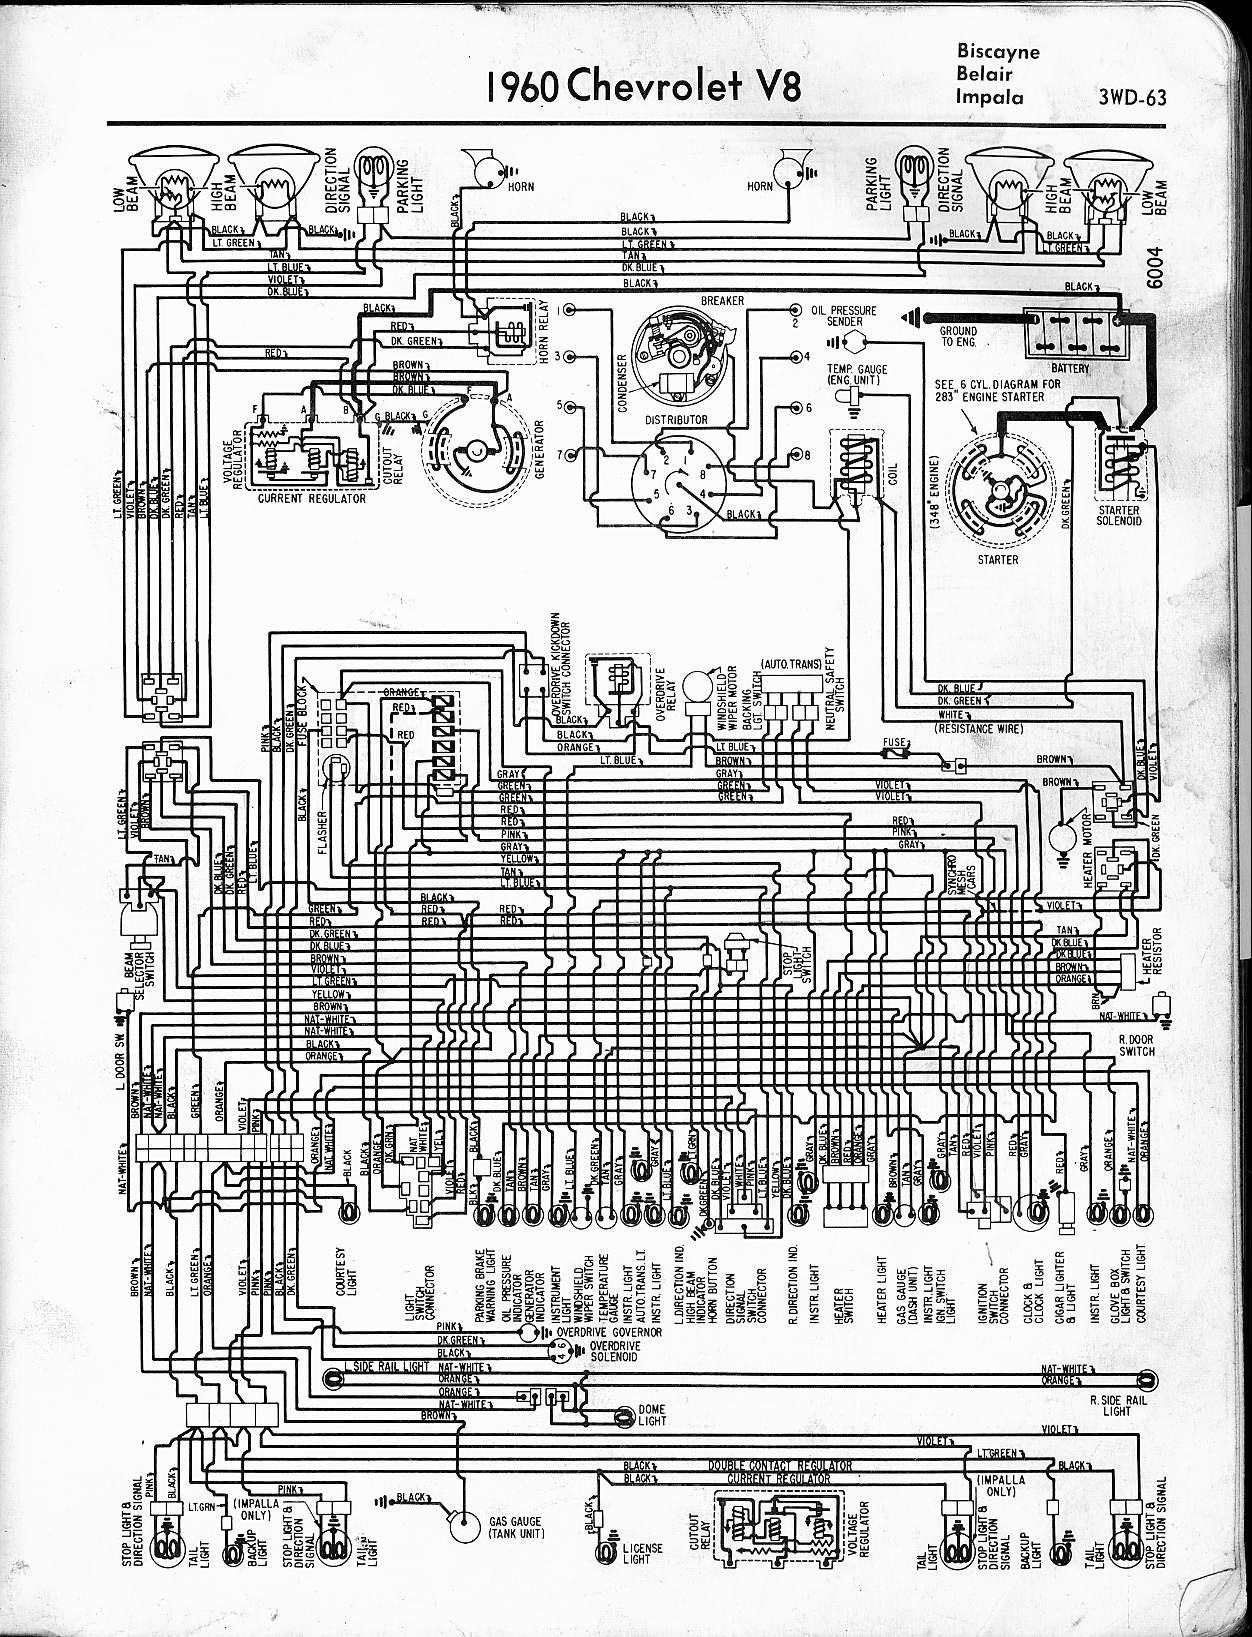 chevrolet cruze diagram wiring schematic Download-1960 V8 Biscayne Belair Impala 4-k